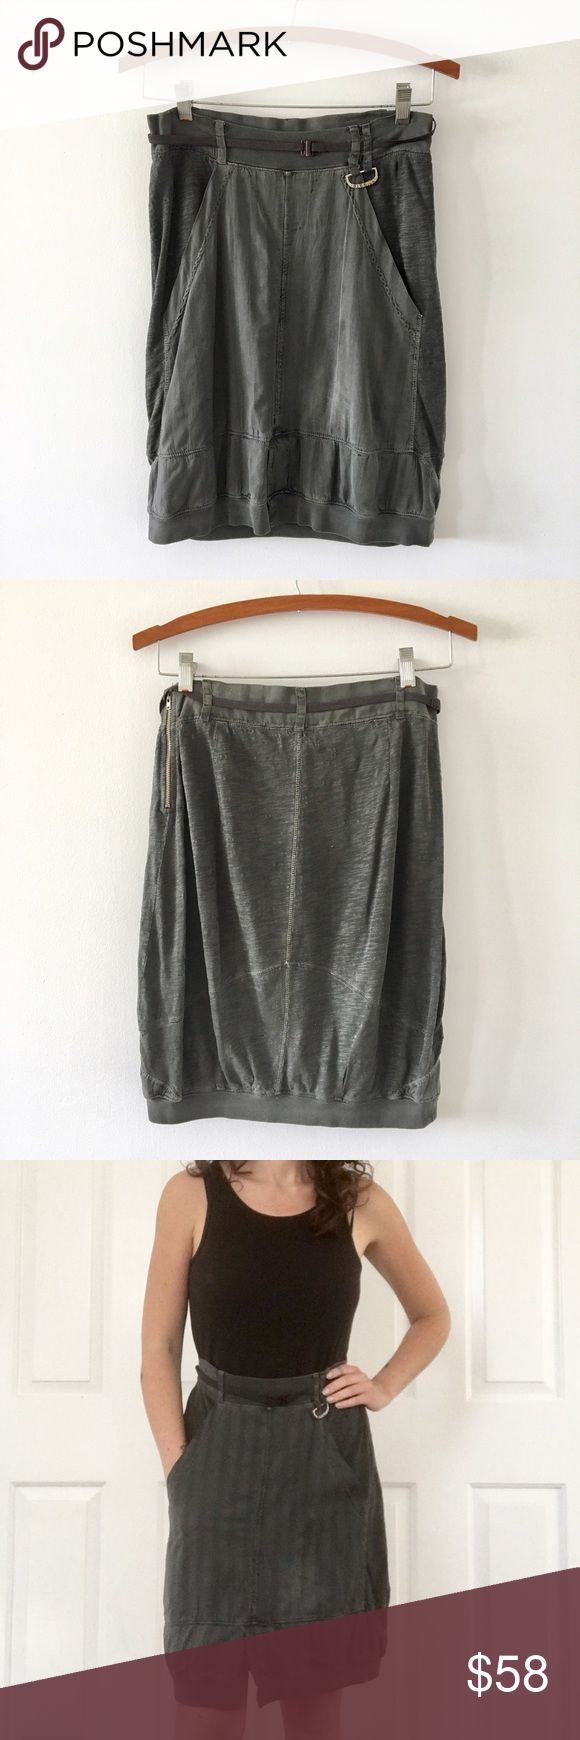 Diesel distressed skirt Extremely comfortable grey diesel distressed skirt. Pre loved - stain on front in photo and bottom snap came out of fabric but this is hidden when on. Size 26 with stretch waist so good for a small or medium. Diesel Skirts Midi